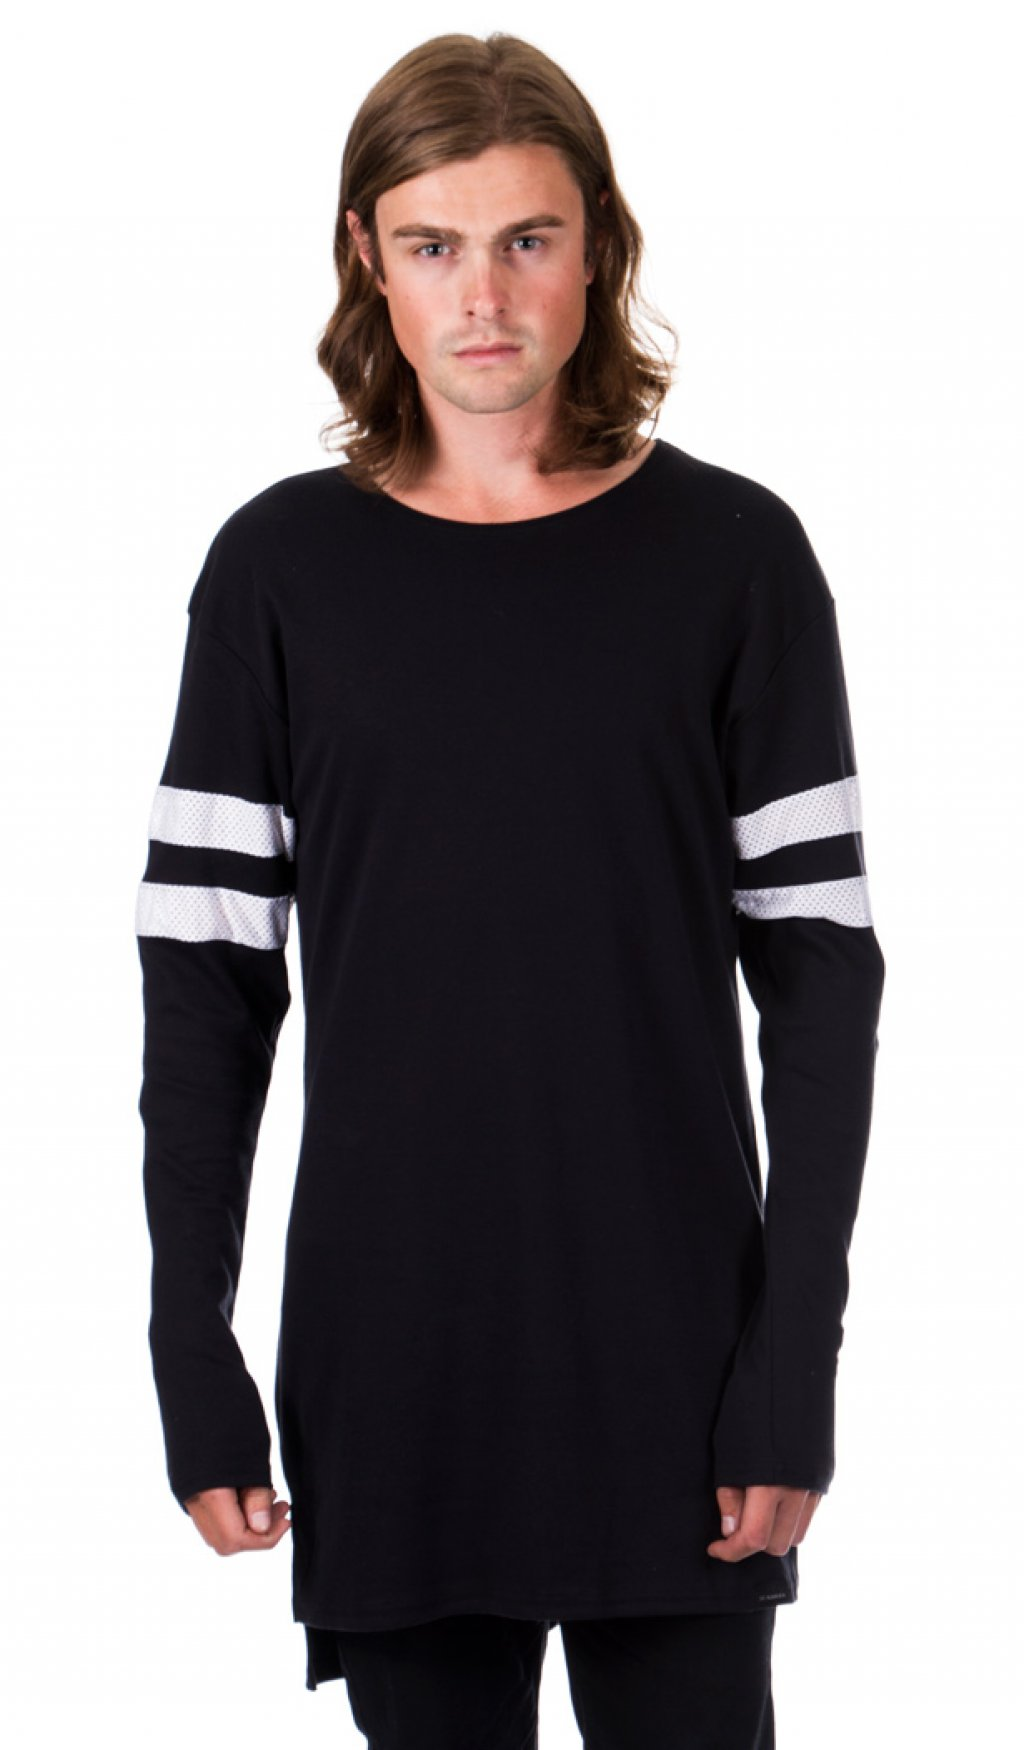 Black t shirt with white stripes - 2 Stripe Long Sleeve T Shirt Black